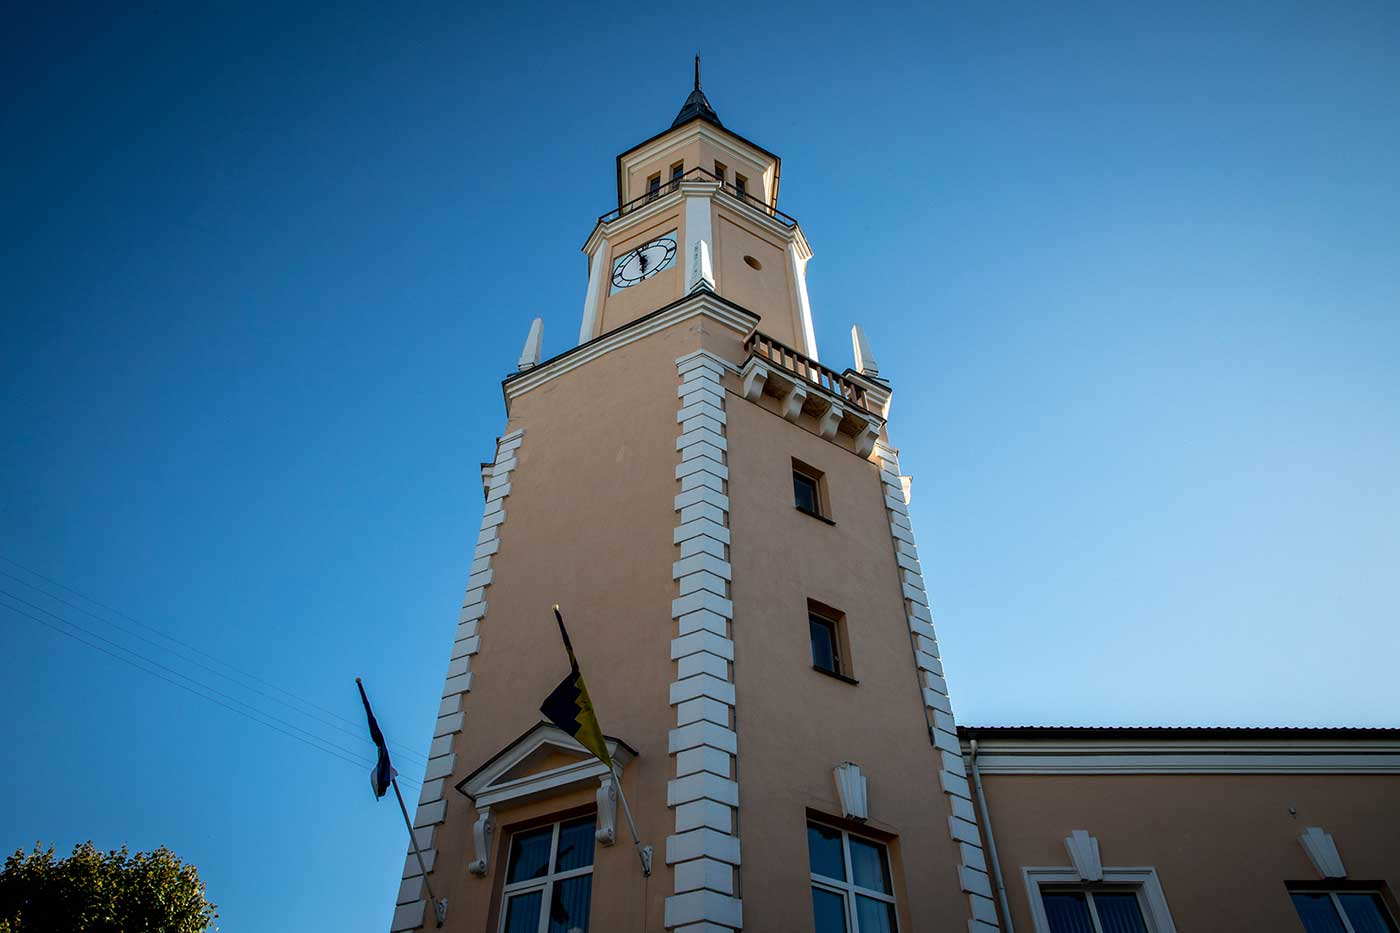 Sillamäe Town Hall was built in the style of a traditional Estonian Lutheran church.